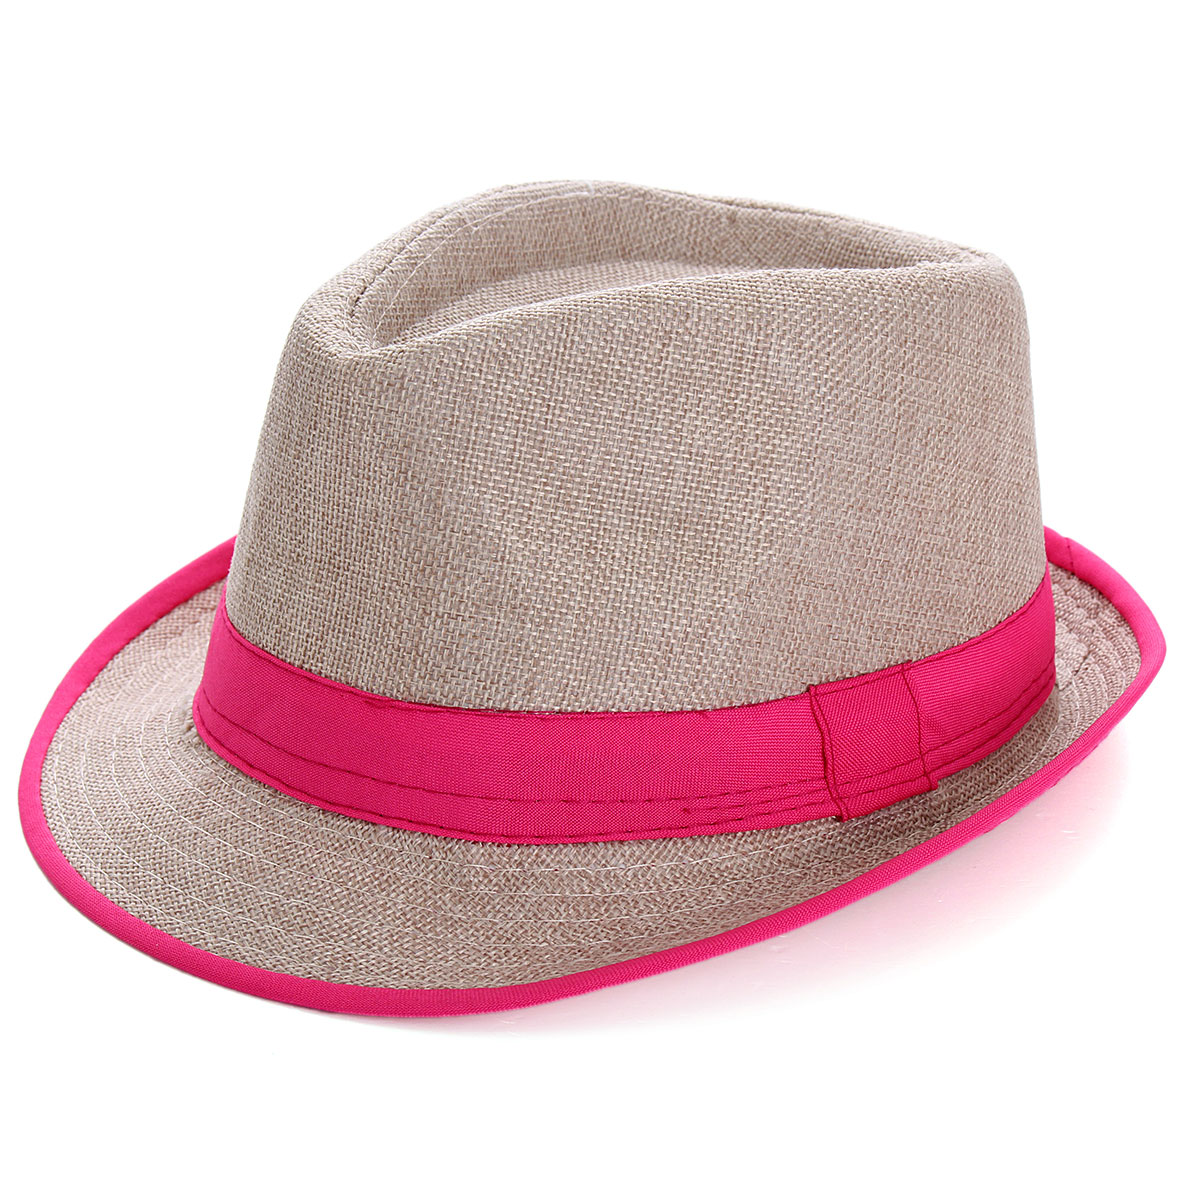 Unisex Men Women Panama Fedora Sun Cap Trilby Straw Gangster Beach Jazz Hat